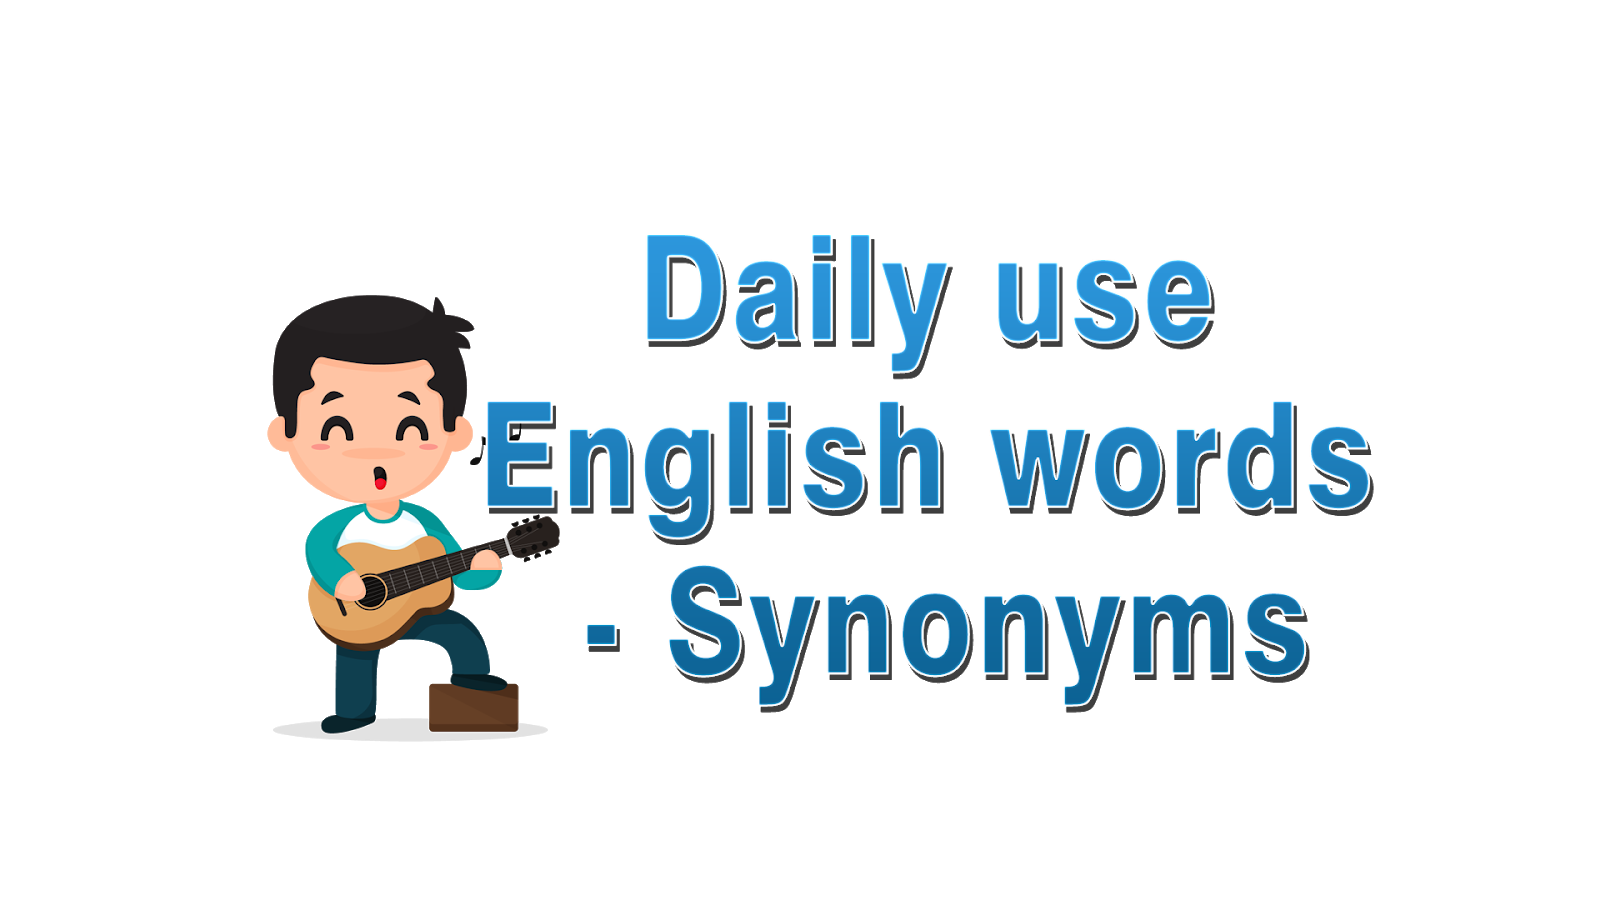 Daily Use English Words With Bengali Meaning Synonyms